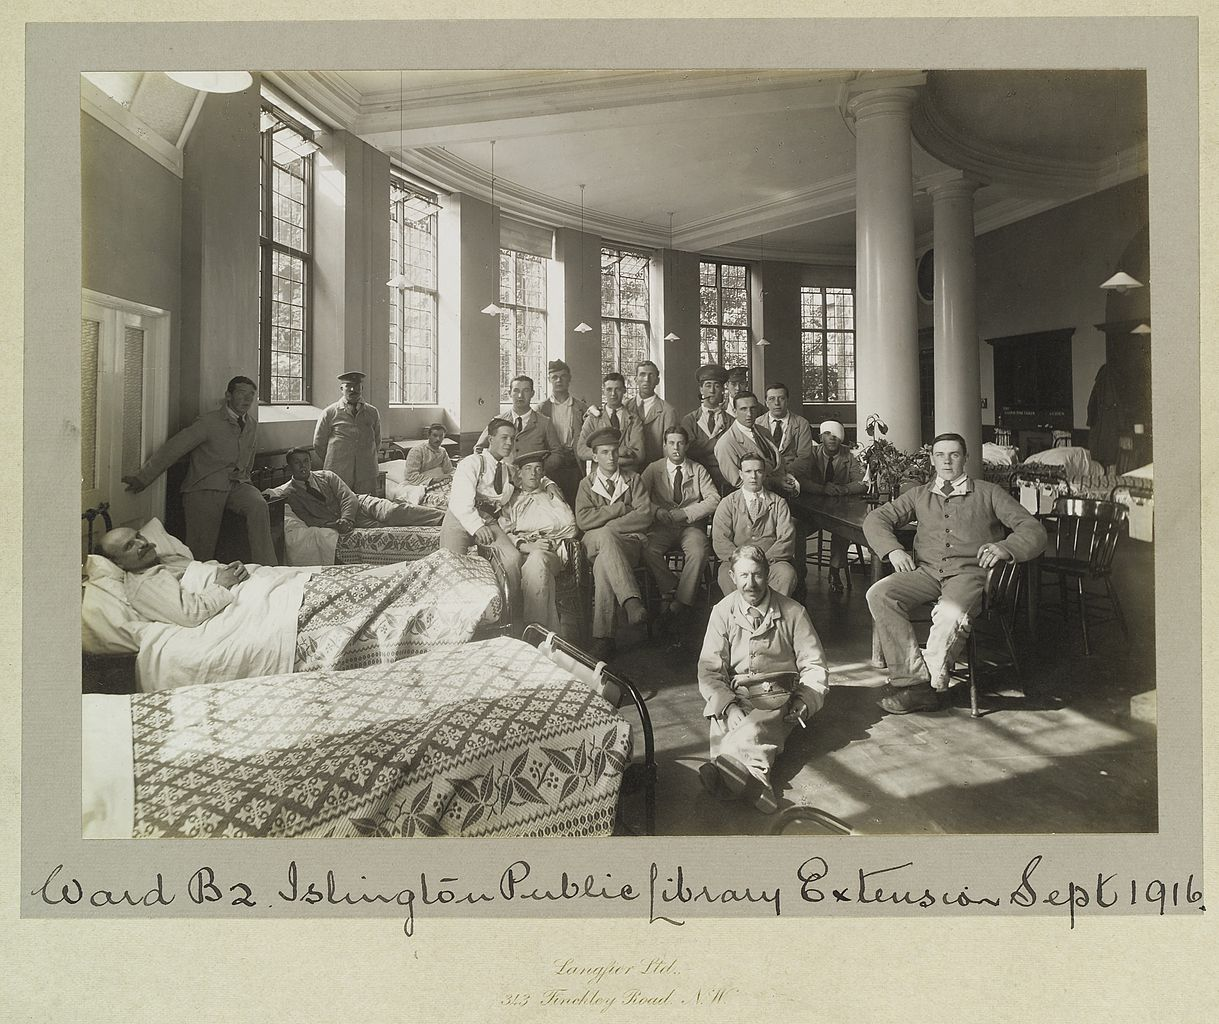 A hospital ward erected in the Islington Public Library in 1916.   Wellcome Images/Wikimedia Commons  (CC BY 4.0)